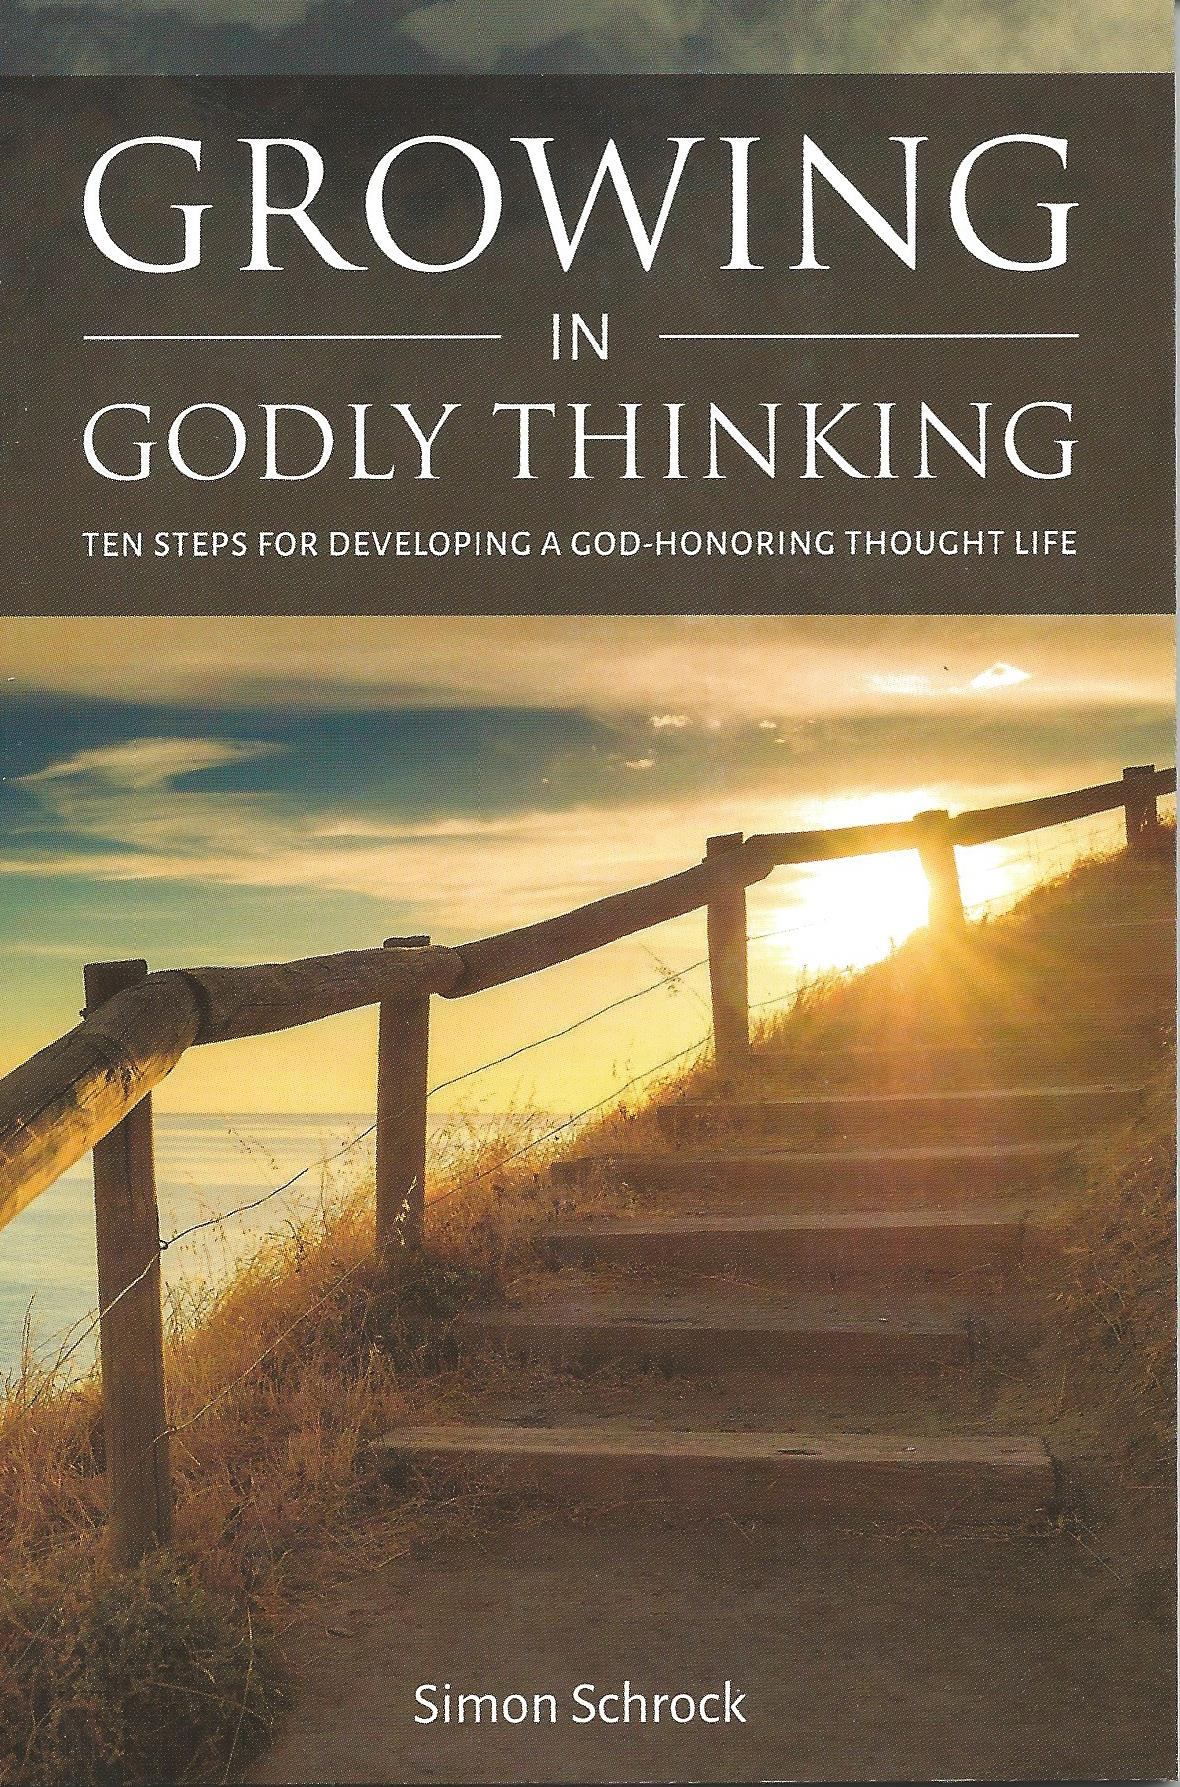 GROWING IN GODLY THINKING Simon Schrock